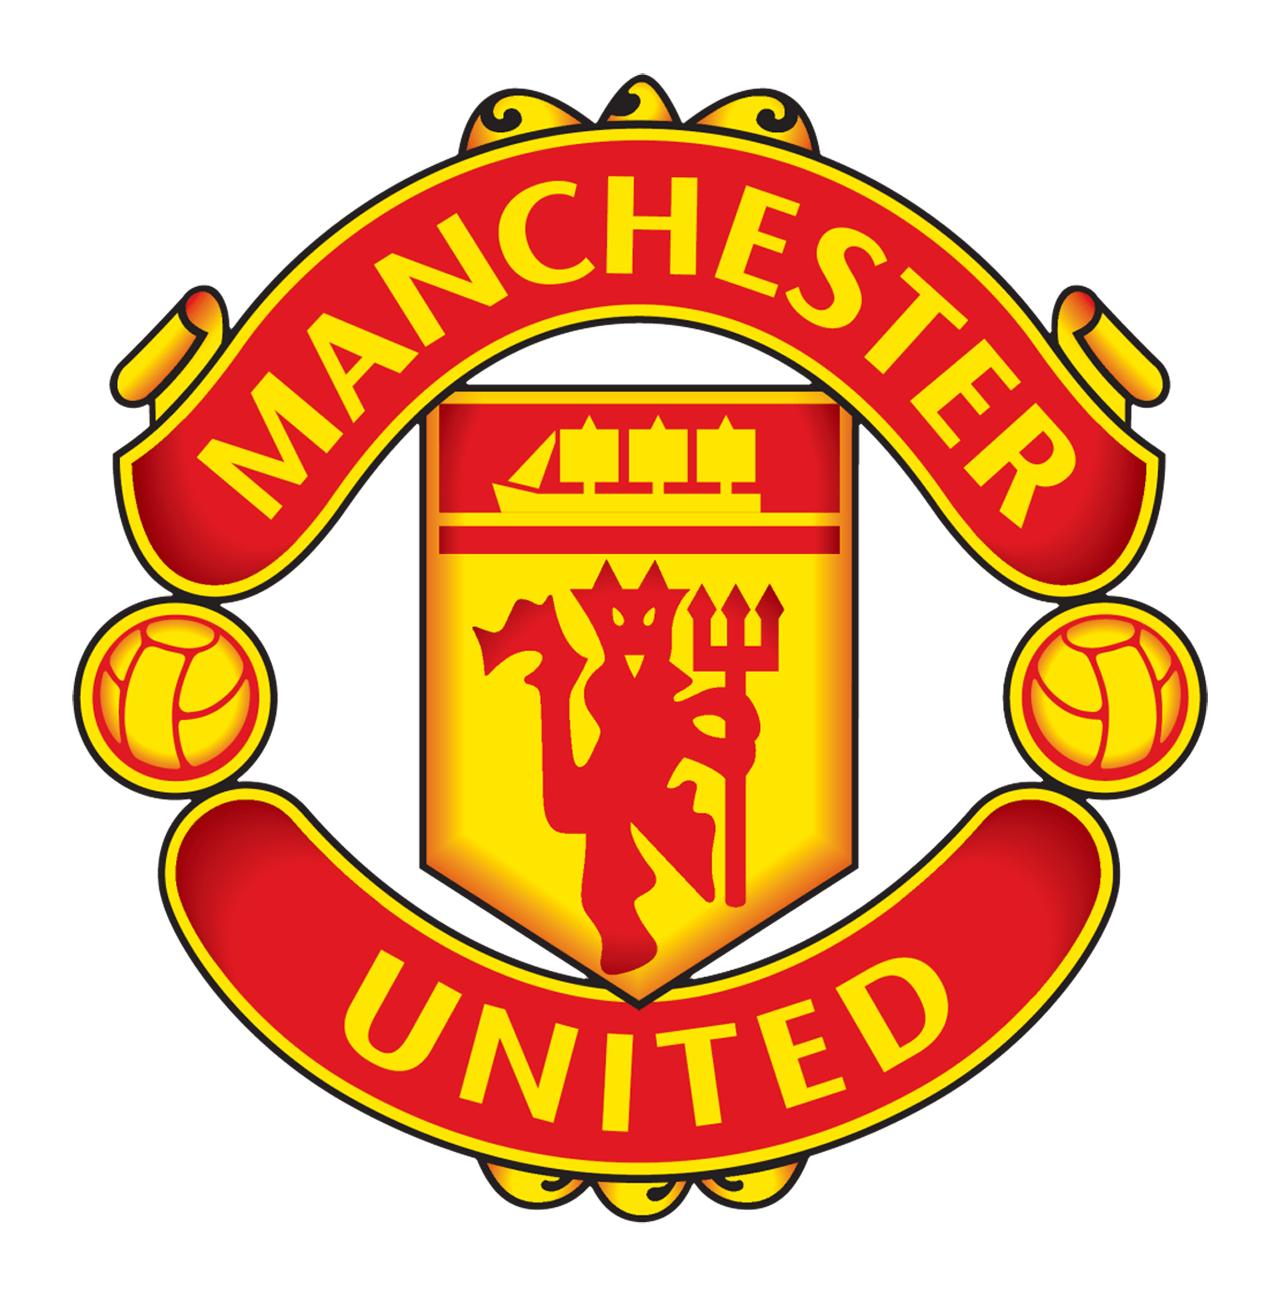 Crest png clear background. Manchester united logo transparent